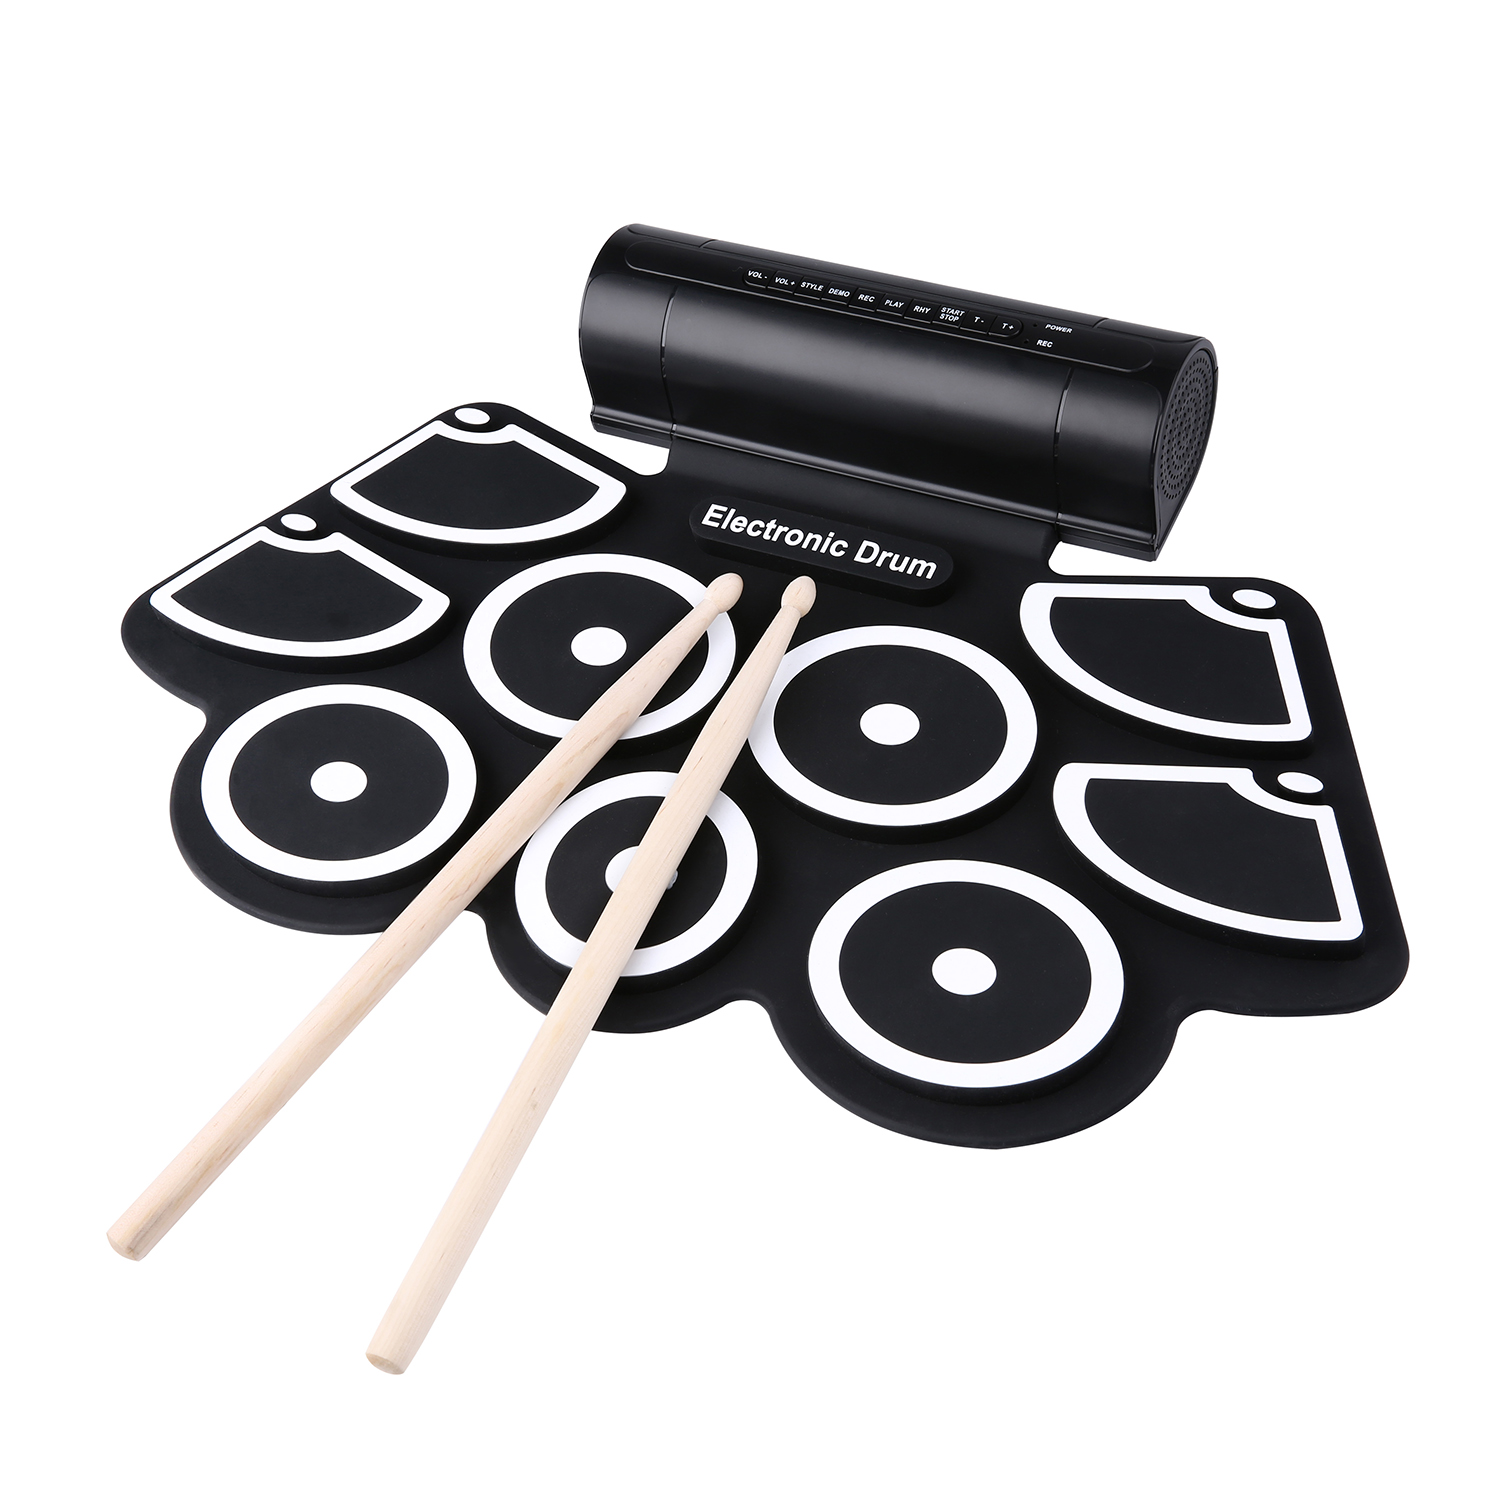 XFDZ Portable Roll Up Electronic USB MIDI Drum Set Kits 9 Pads Built-in Speakers Foot Pedals Drumsticks USB Cable For Practice